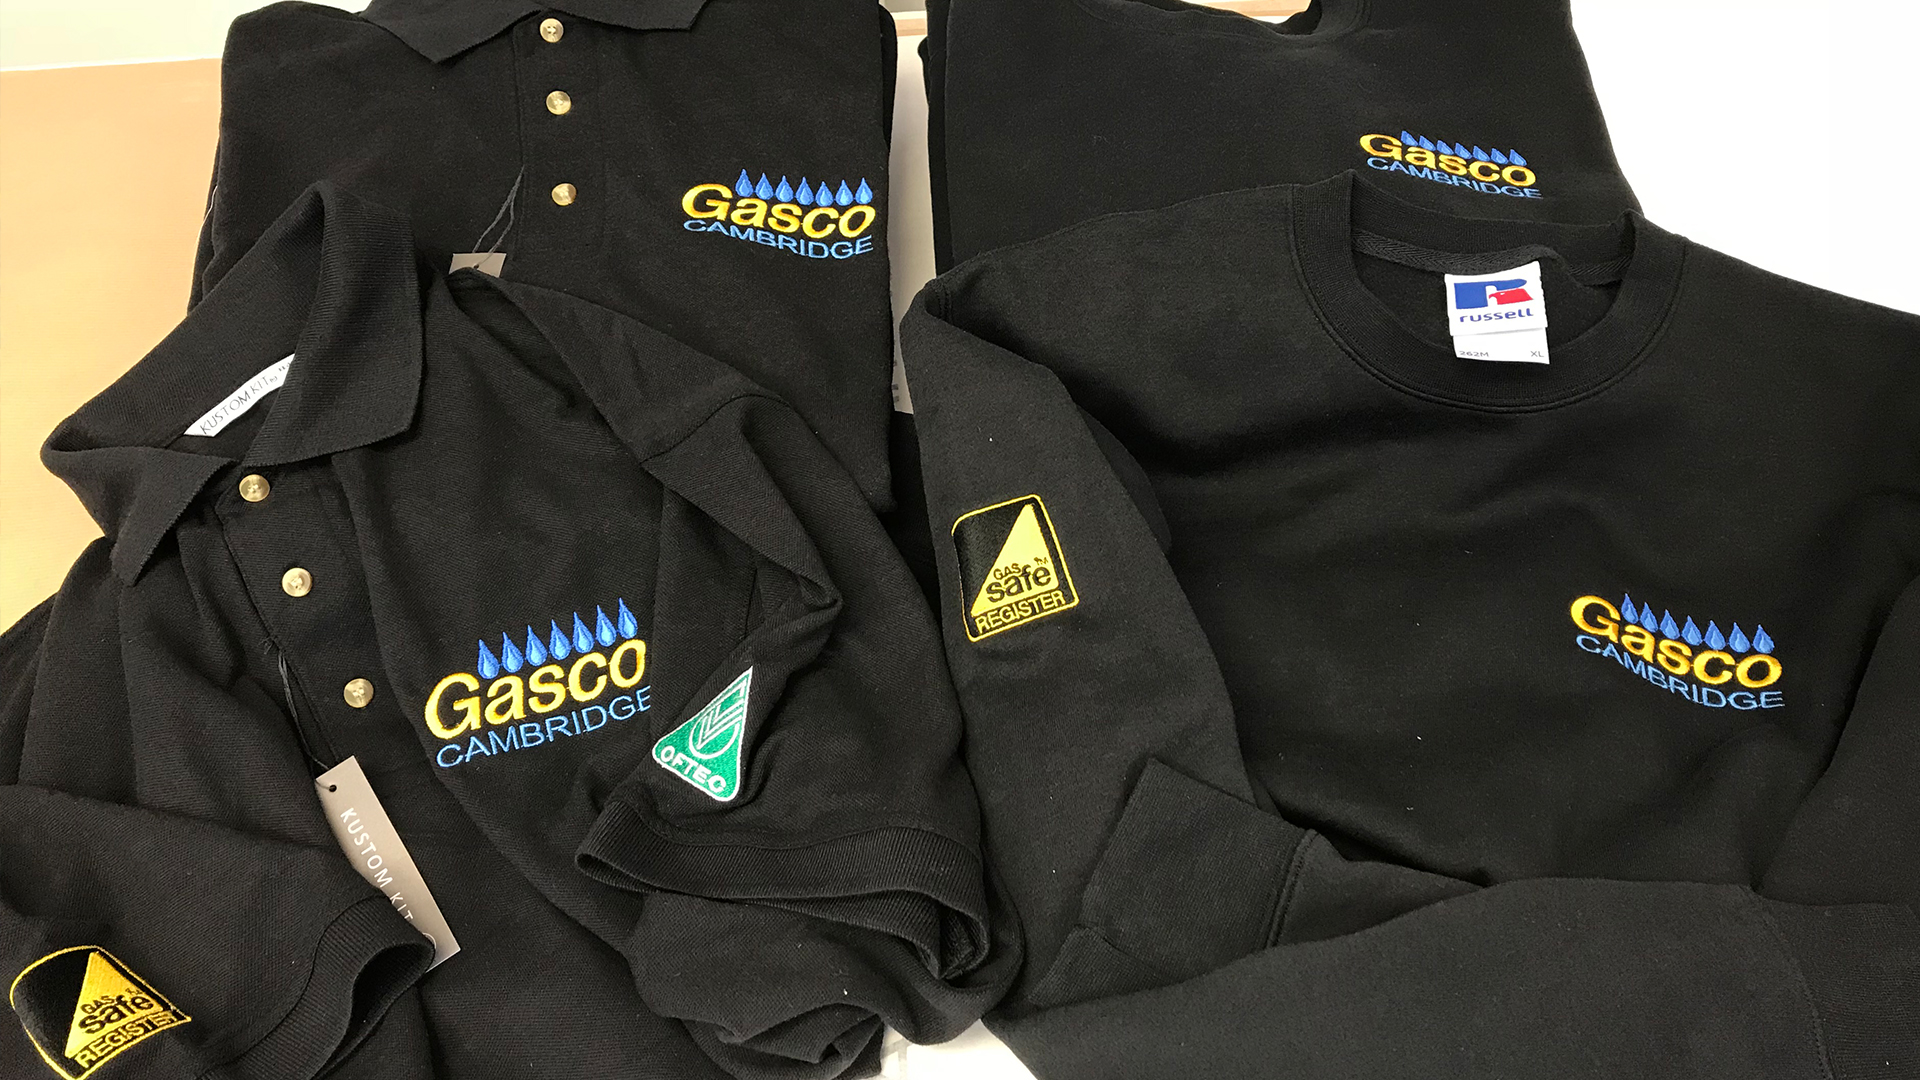 Should your business use branded workwear?